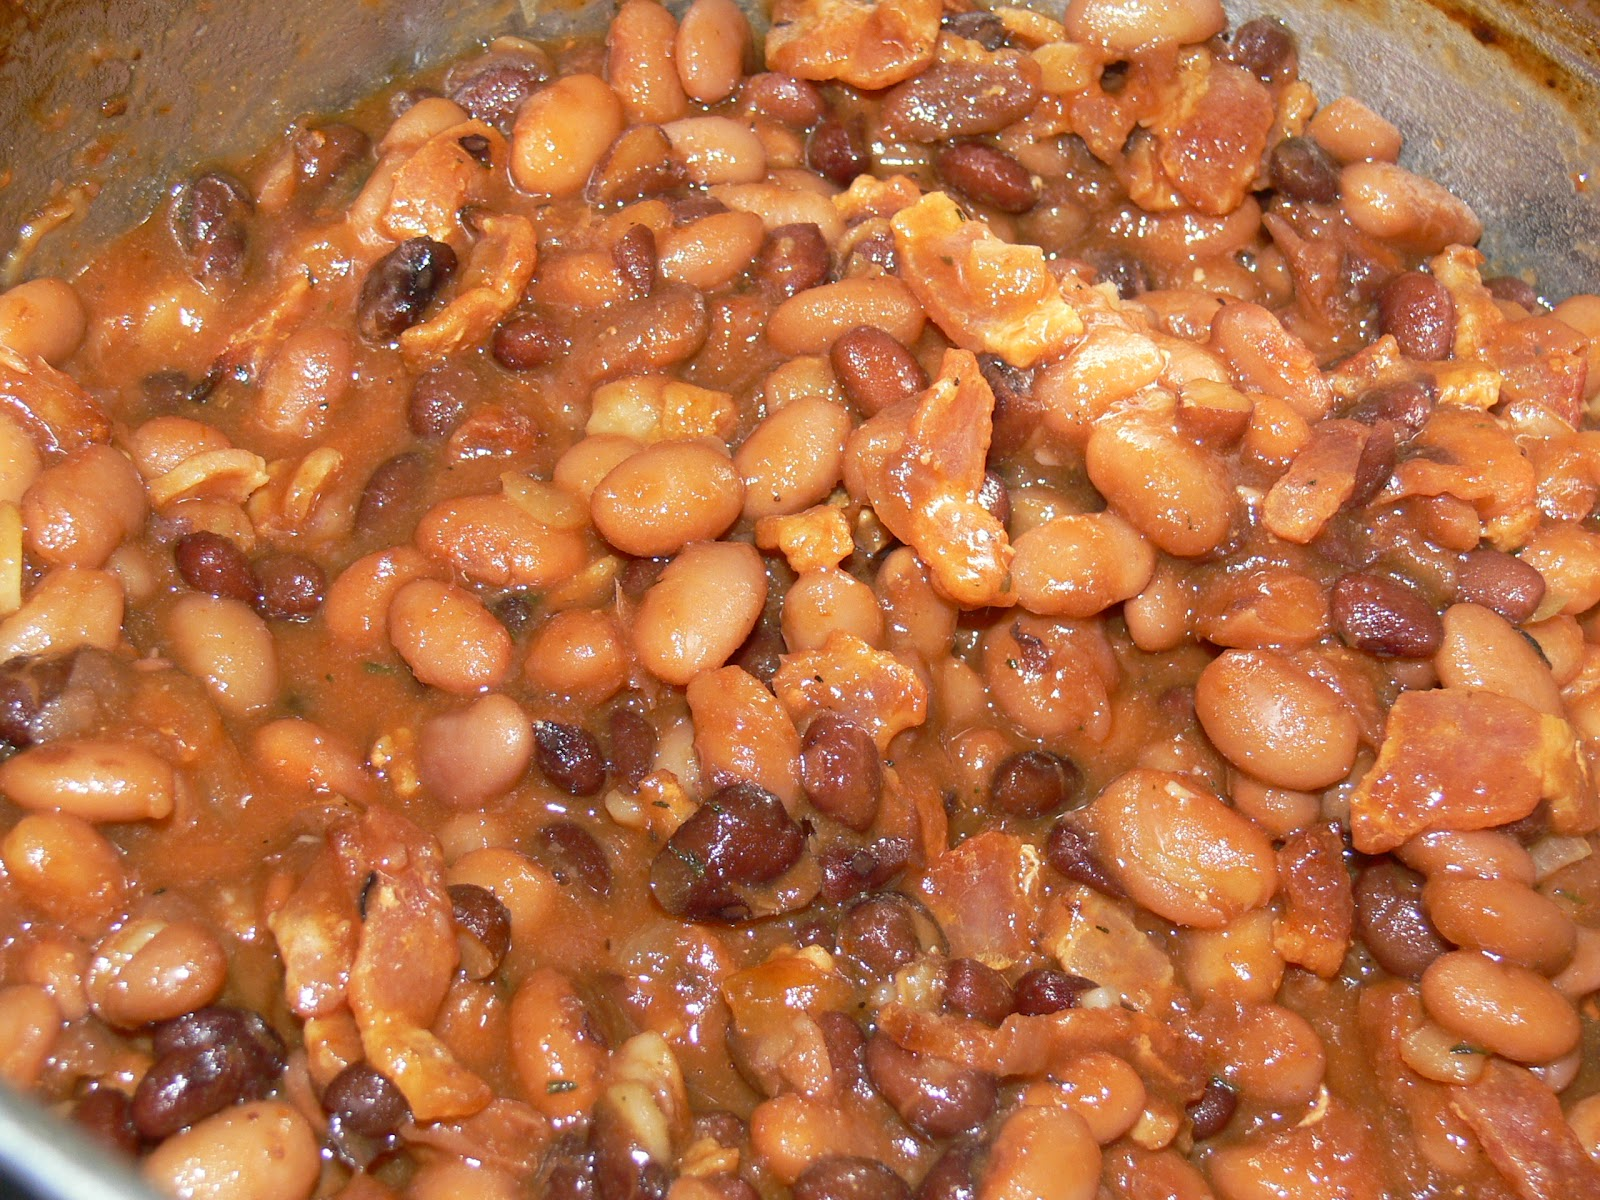 In the Kitchen with Jenny: Three Bean Baked Beans